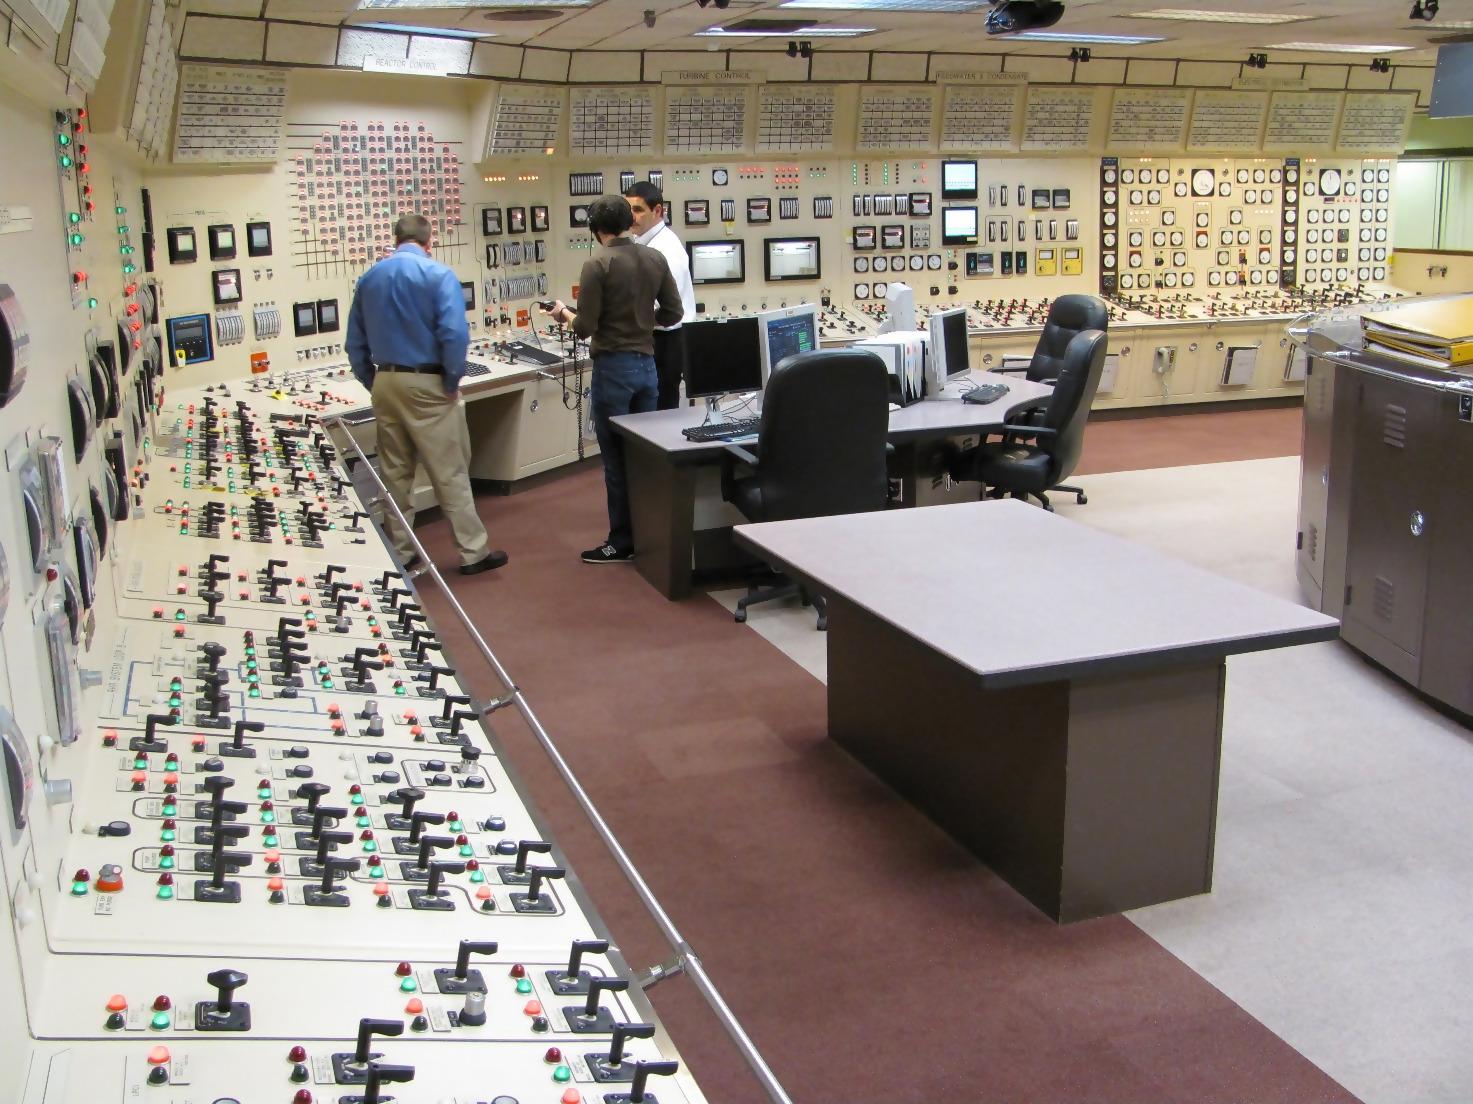 Nuclear Power Plant Control Room Features